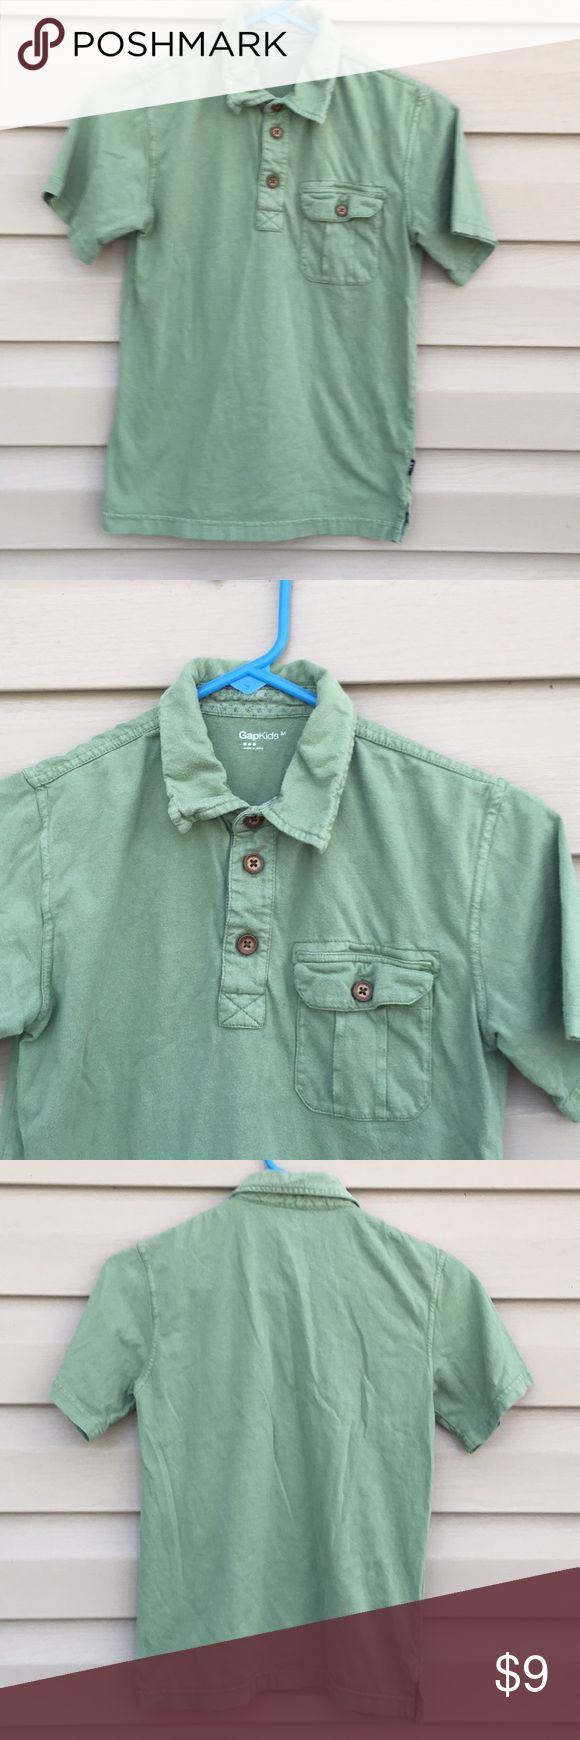 GapKids boys green polo shirt with wooden buttons Nice green shirt with button front pocket, wooden buttons, 100% cotton, no snags, stains or holes GapKids Shirts & Tops Polos